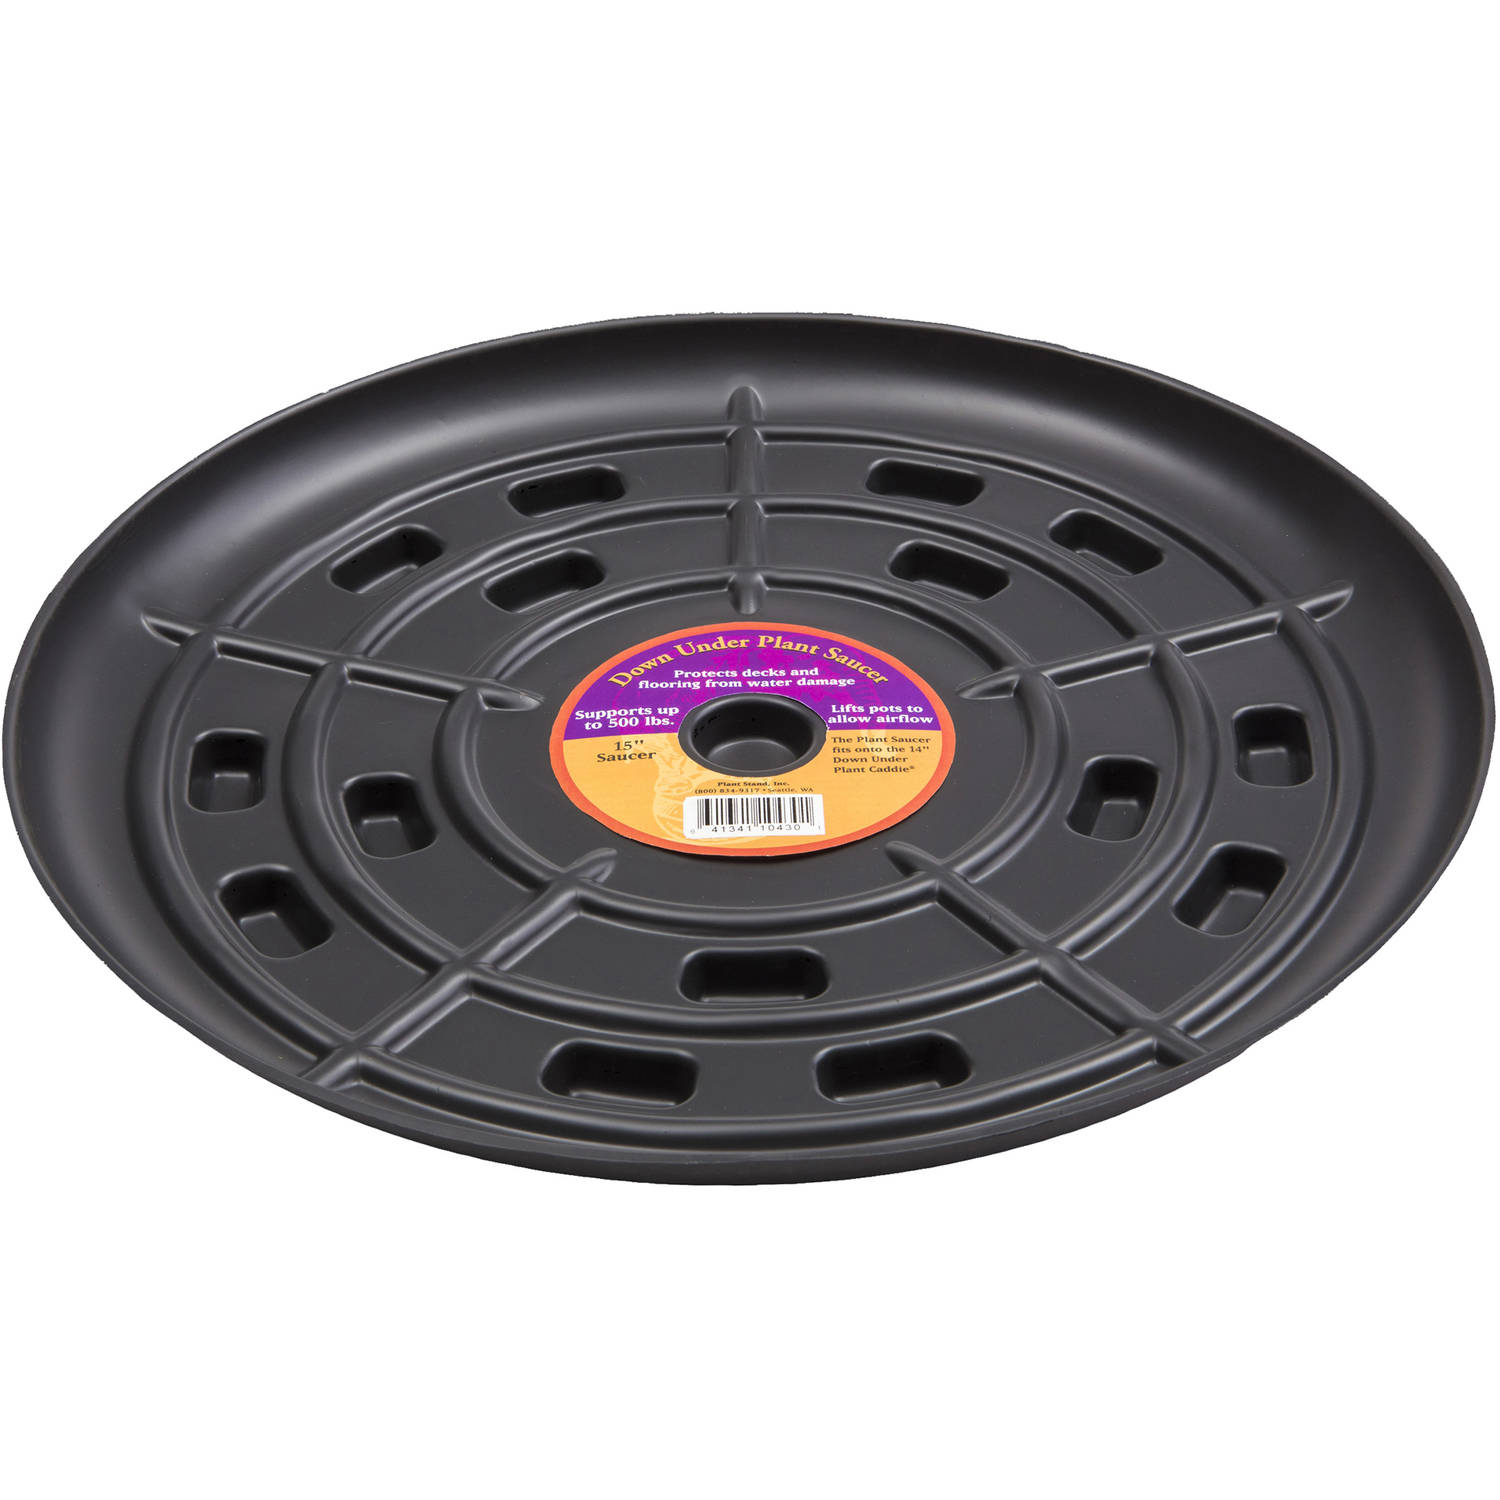 "Down Under Plant Caddie 51510 15"" Black Saucer"